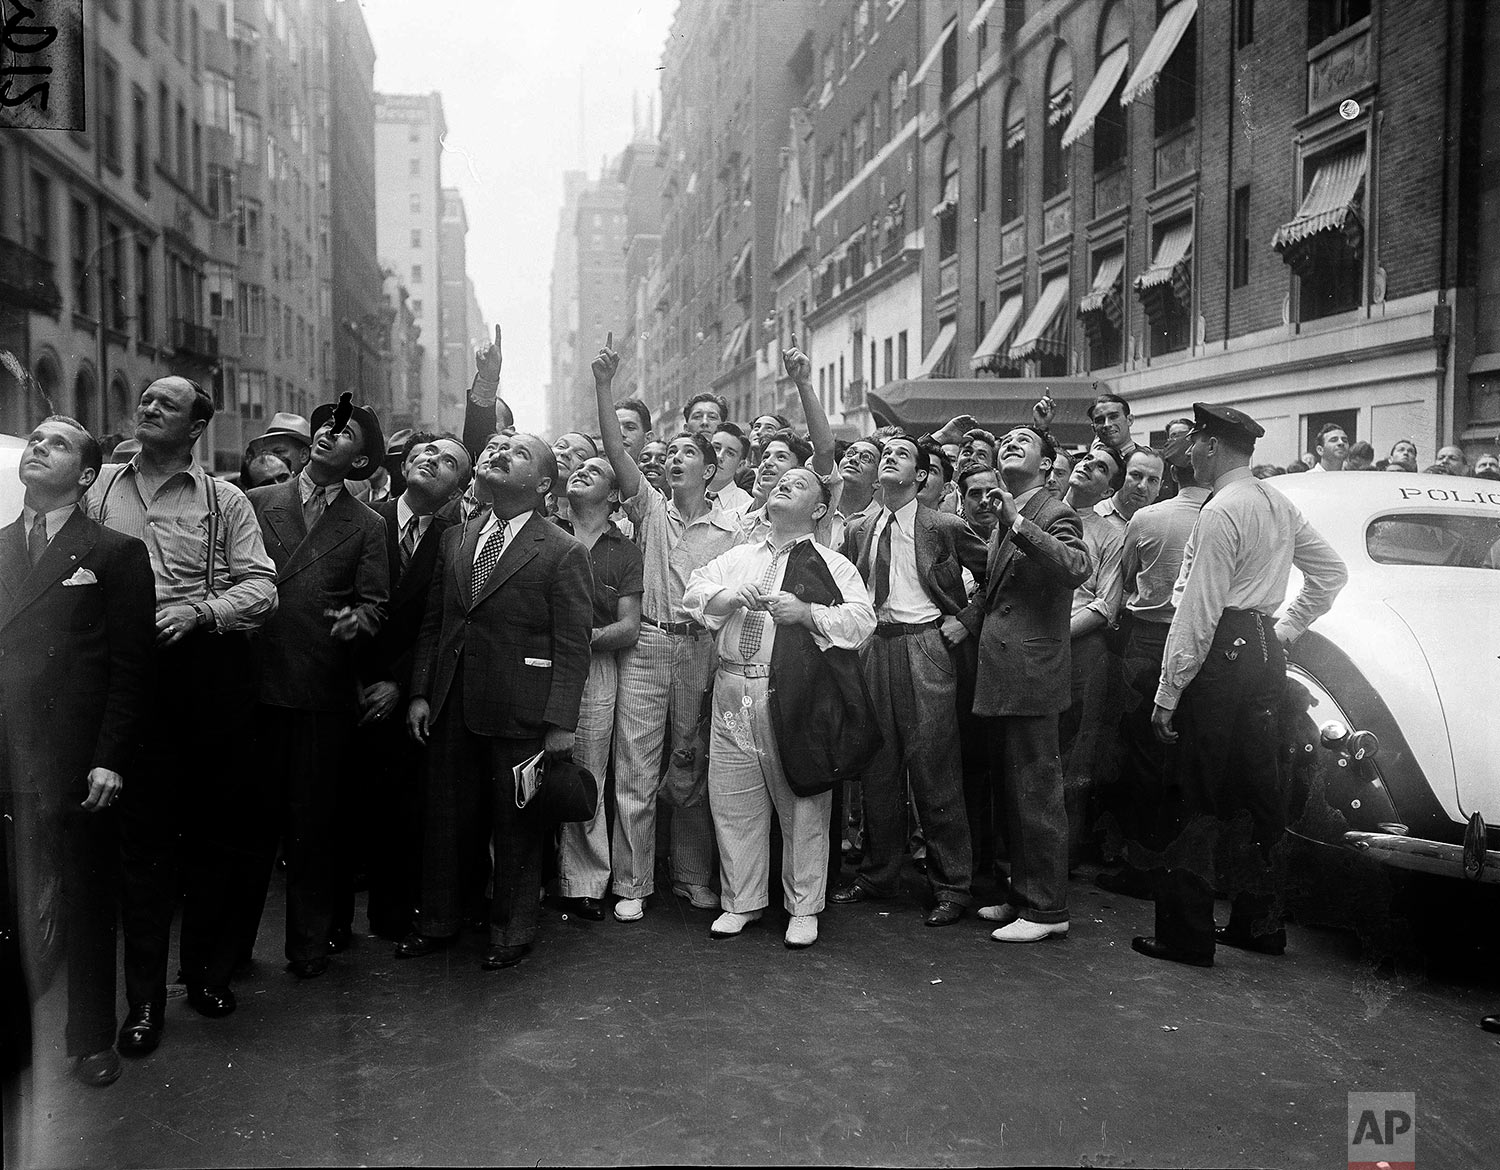 A curious crowd of thousands of onlookers nervously watch John Ward, as he perched himself on a ledge on the 17th floor of the Gothan Hotel on Fifth Avenue in New York, threatening to jump, July 26, 1938. Several times spectators scurried backward as it appeared ward would leap from his precarious perch. (AP Photo/Max Desfor)